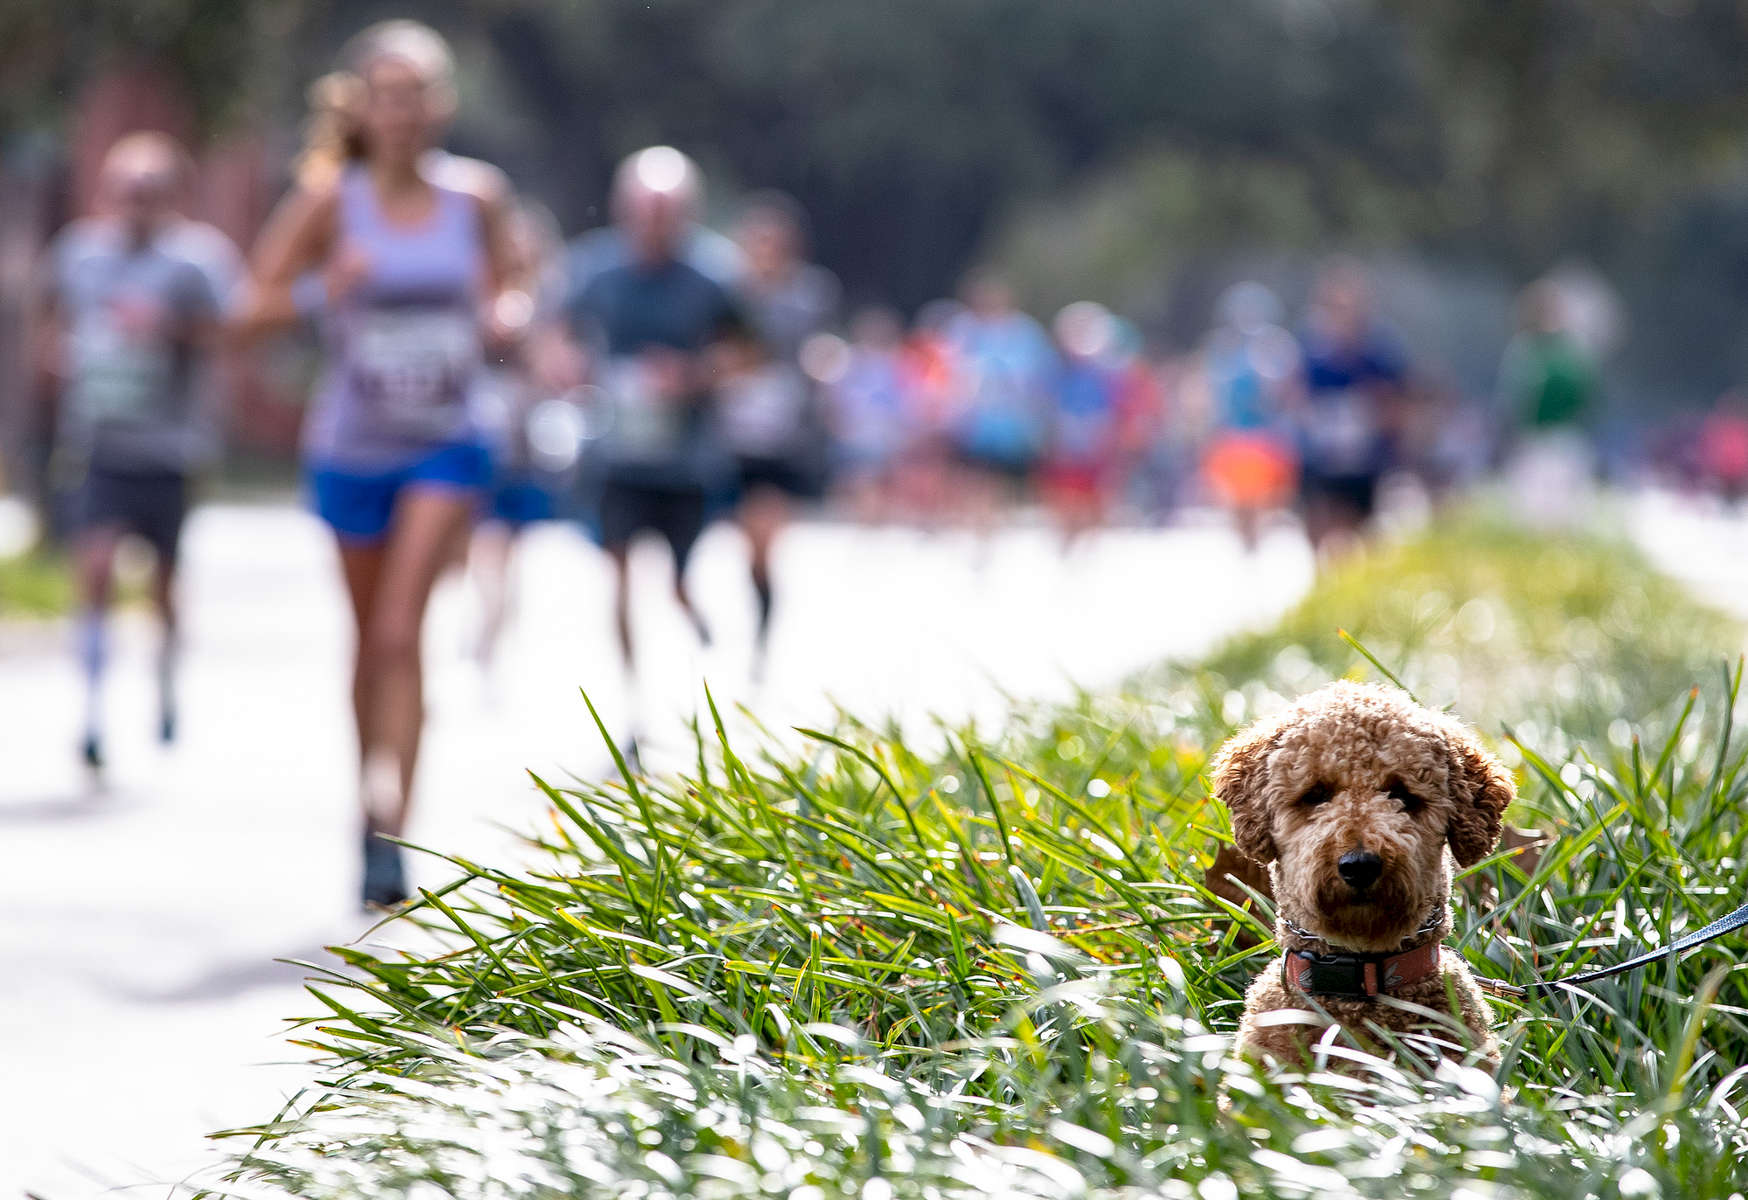 A dog looks on as runners compete during the Humana Rock 'n' Roll Marathon on February 10, 2019 in New Orleans, Louisiana